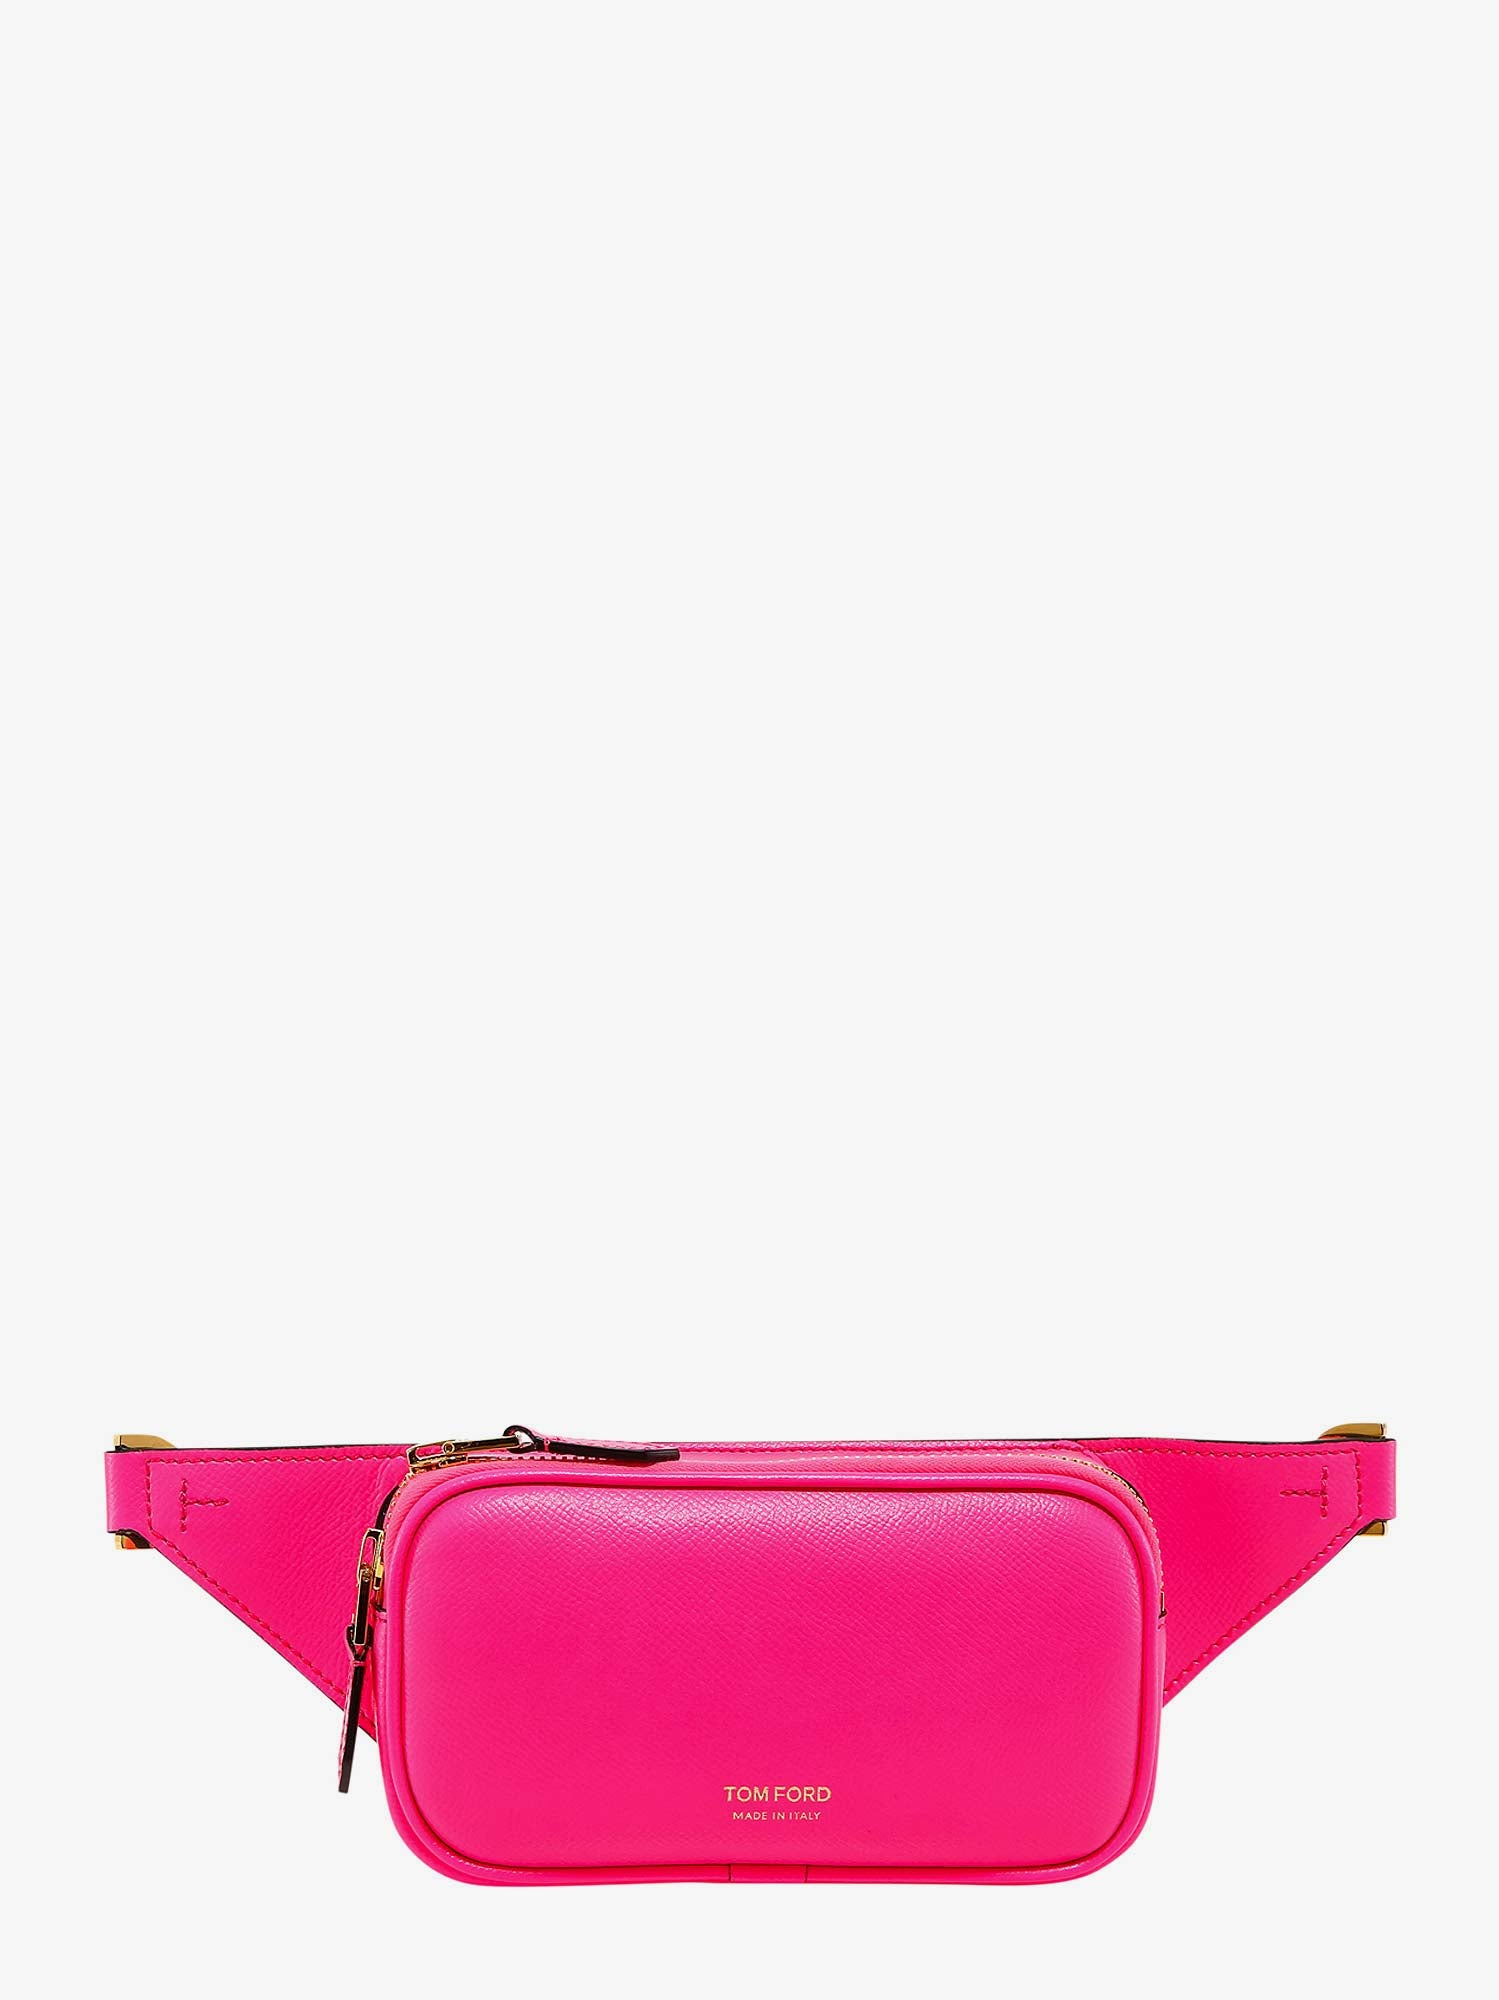 Tom Ford Leathers BELT BAG